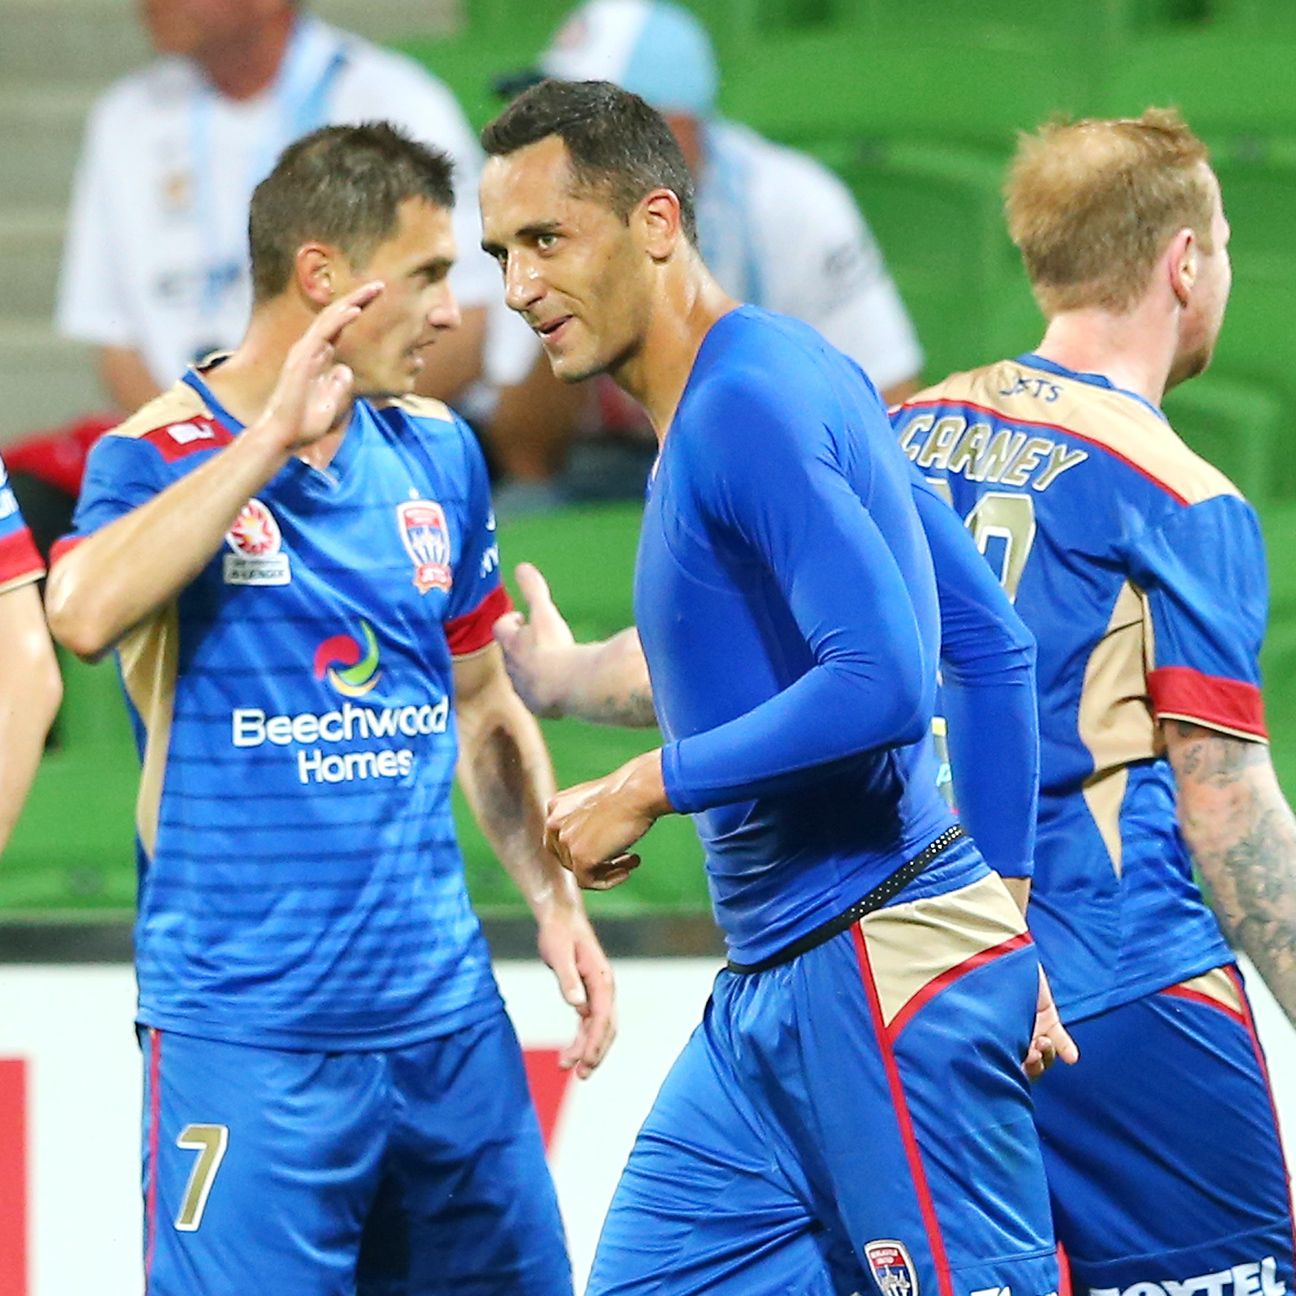 Newcastle Jets are off to a scorching start, with Western Sydney Wanderers next on the docket.